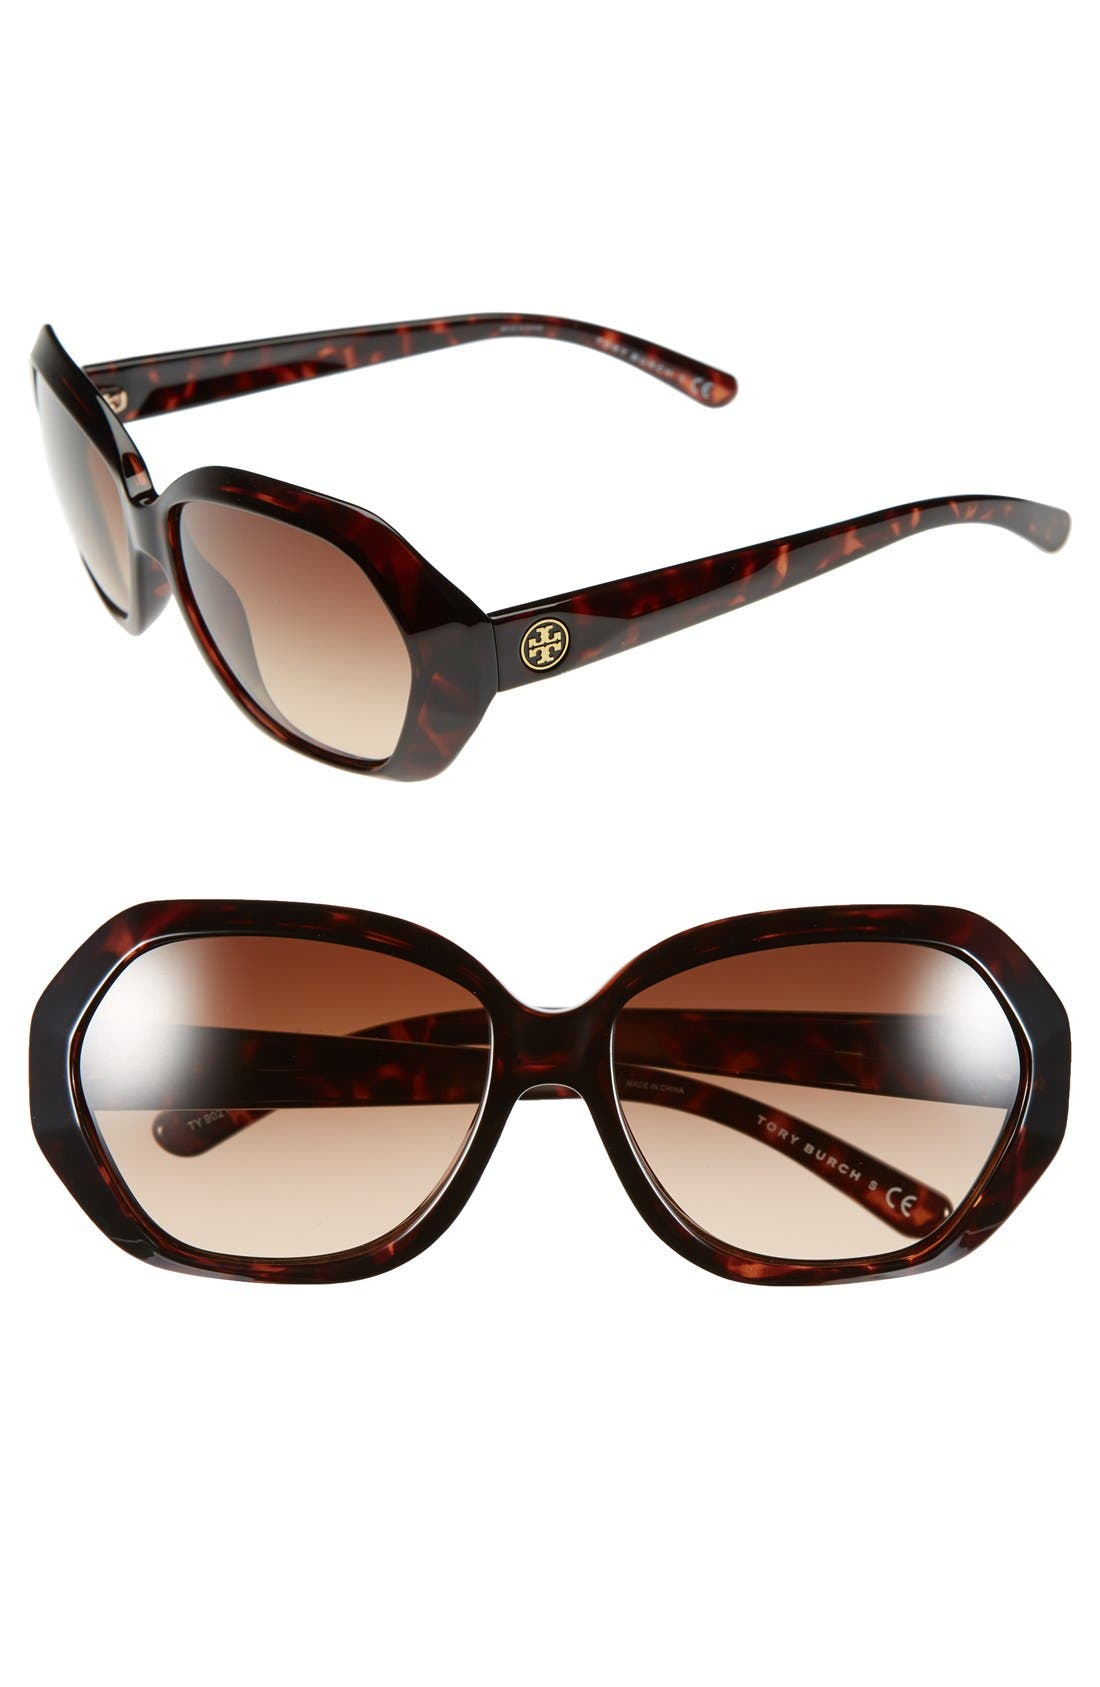 Main Image - Tory Burch 57mm Sunglasses